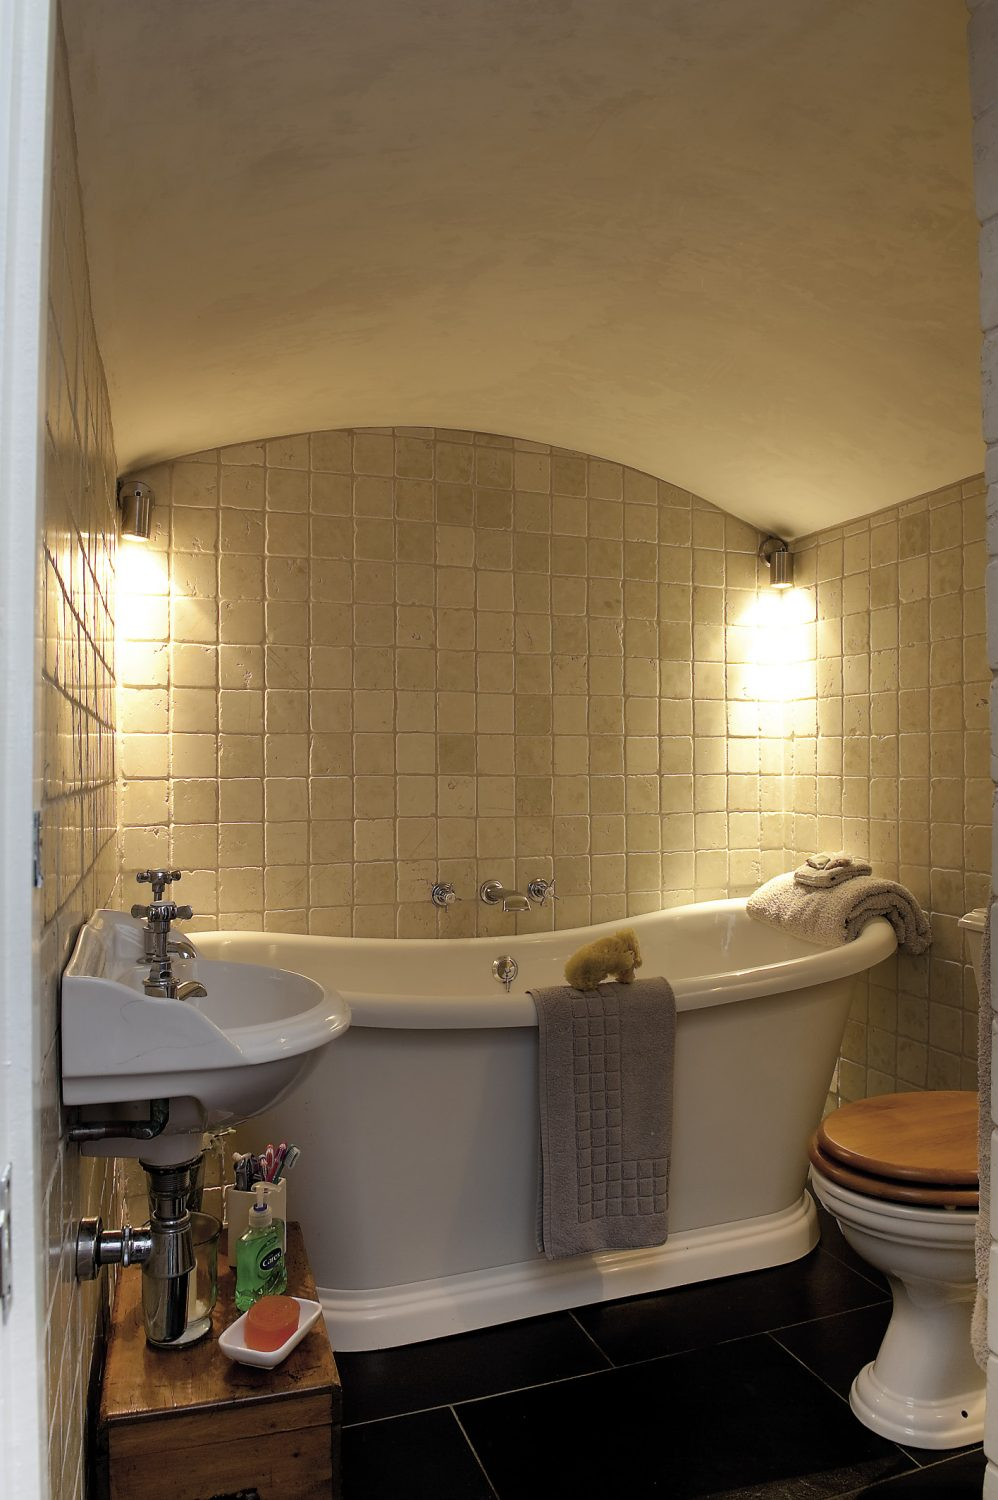 Housed in the former coal chute, the curved ceiling of the bathroom has been retained, so that with the huge freestanding bath and the limestone mosaic tiles, the room has more than a hint of the Roman baths about it.